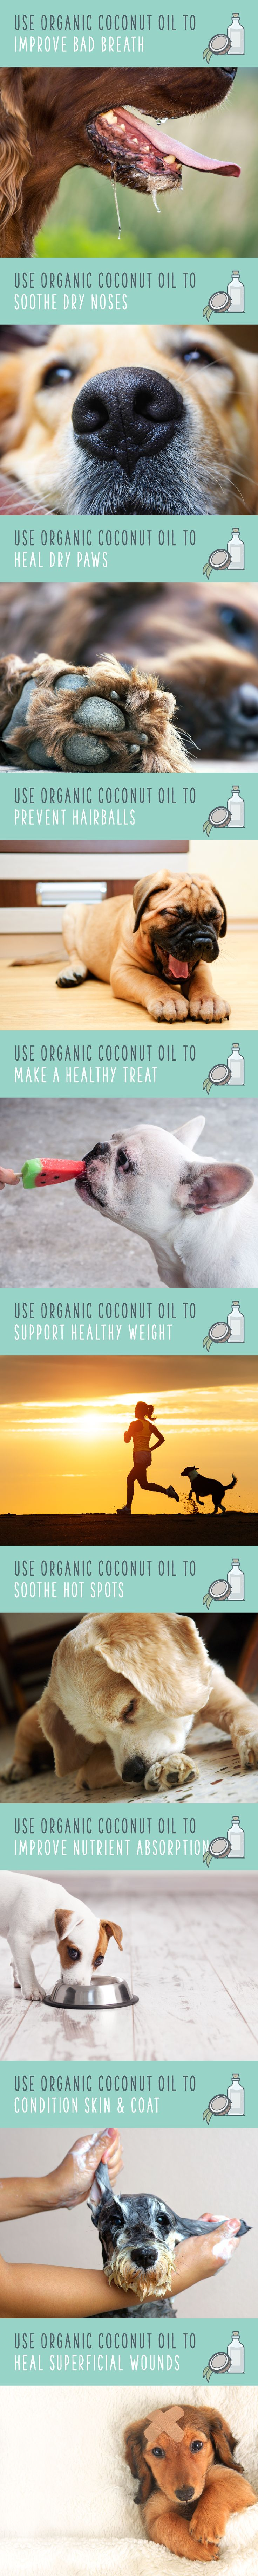 Raw coconut oil is a simple, natural remedy for many of your dog's health problems! And it's healthy when they inevitably lick it off